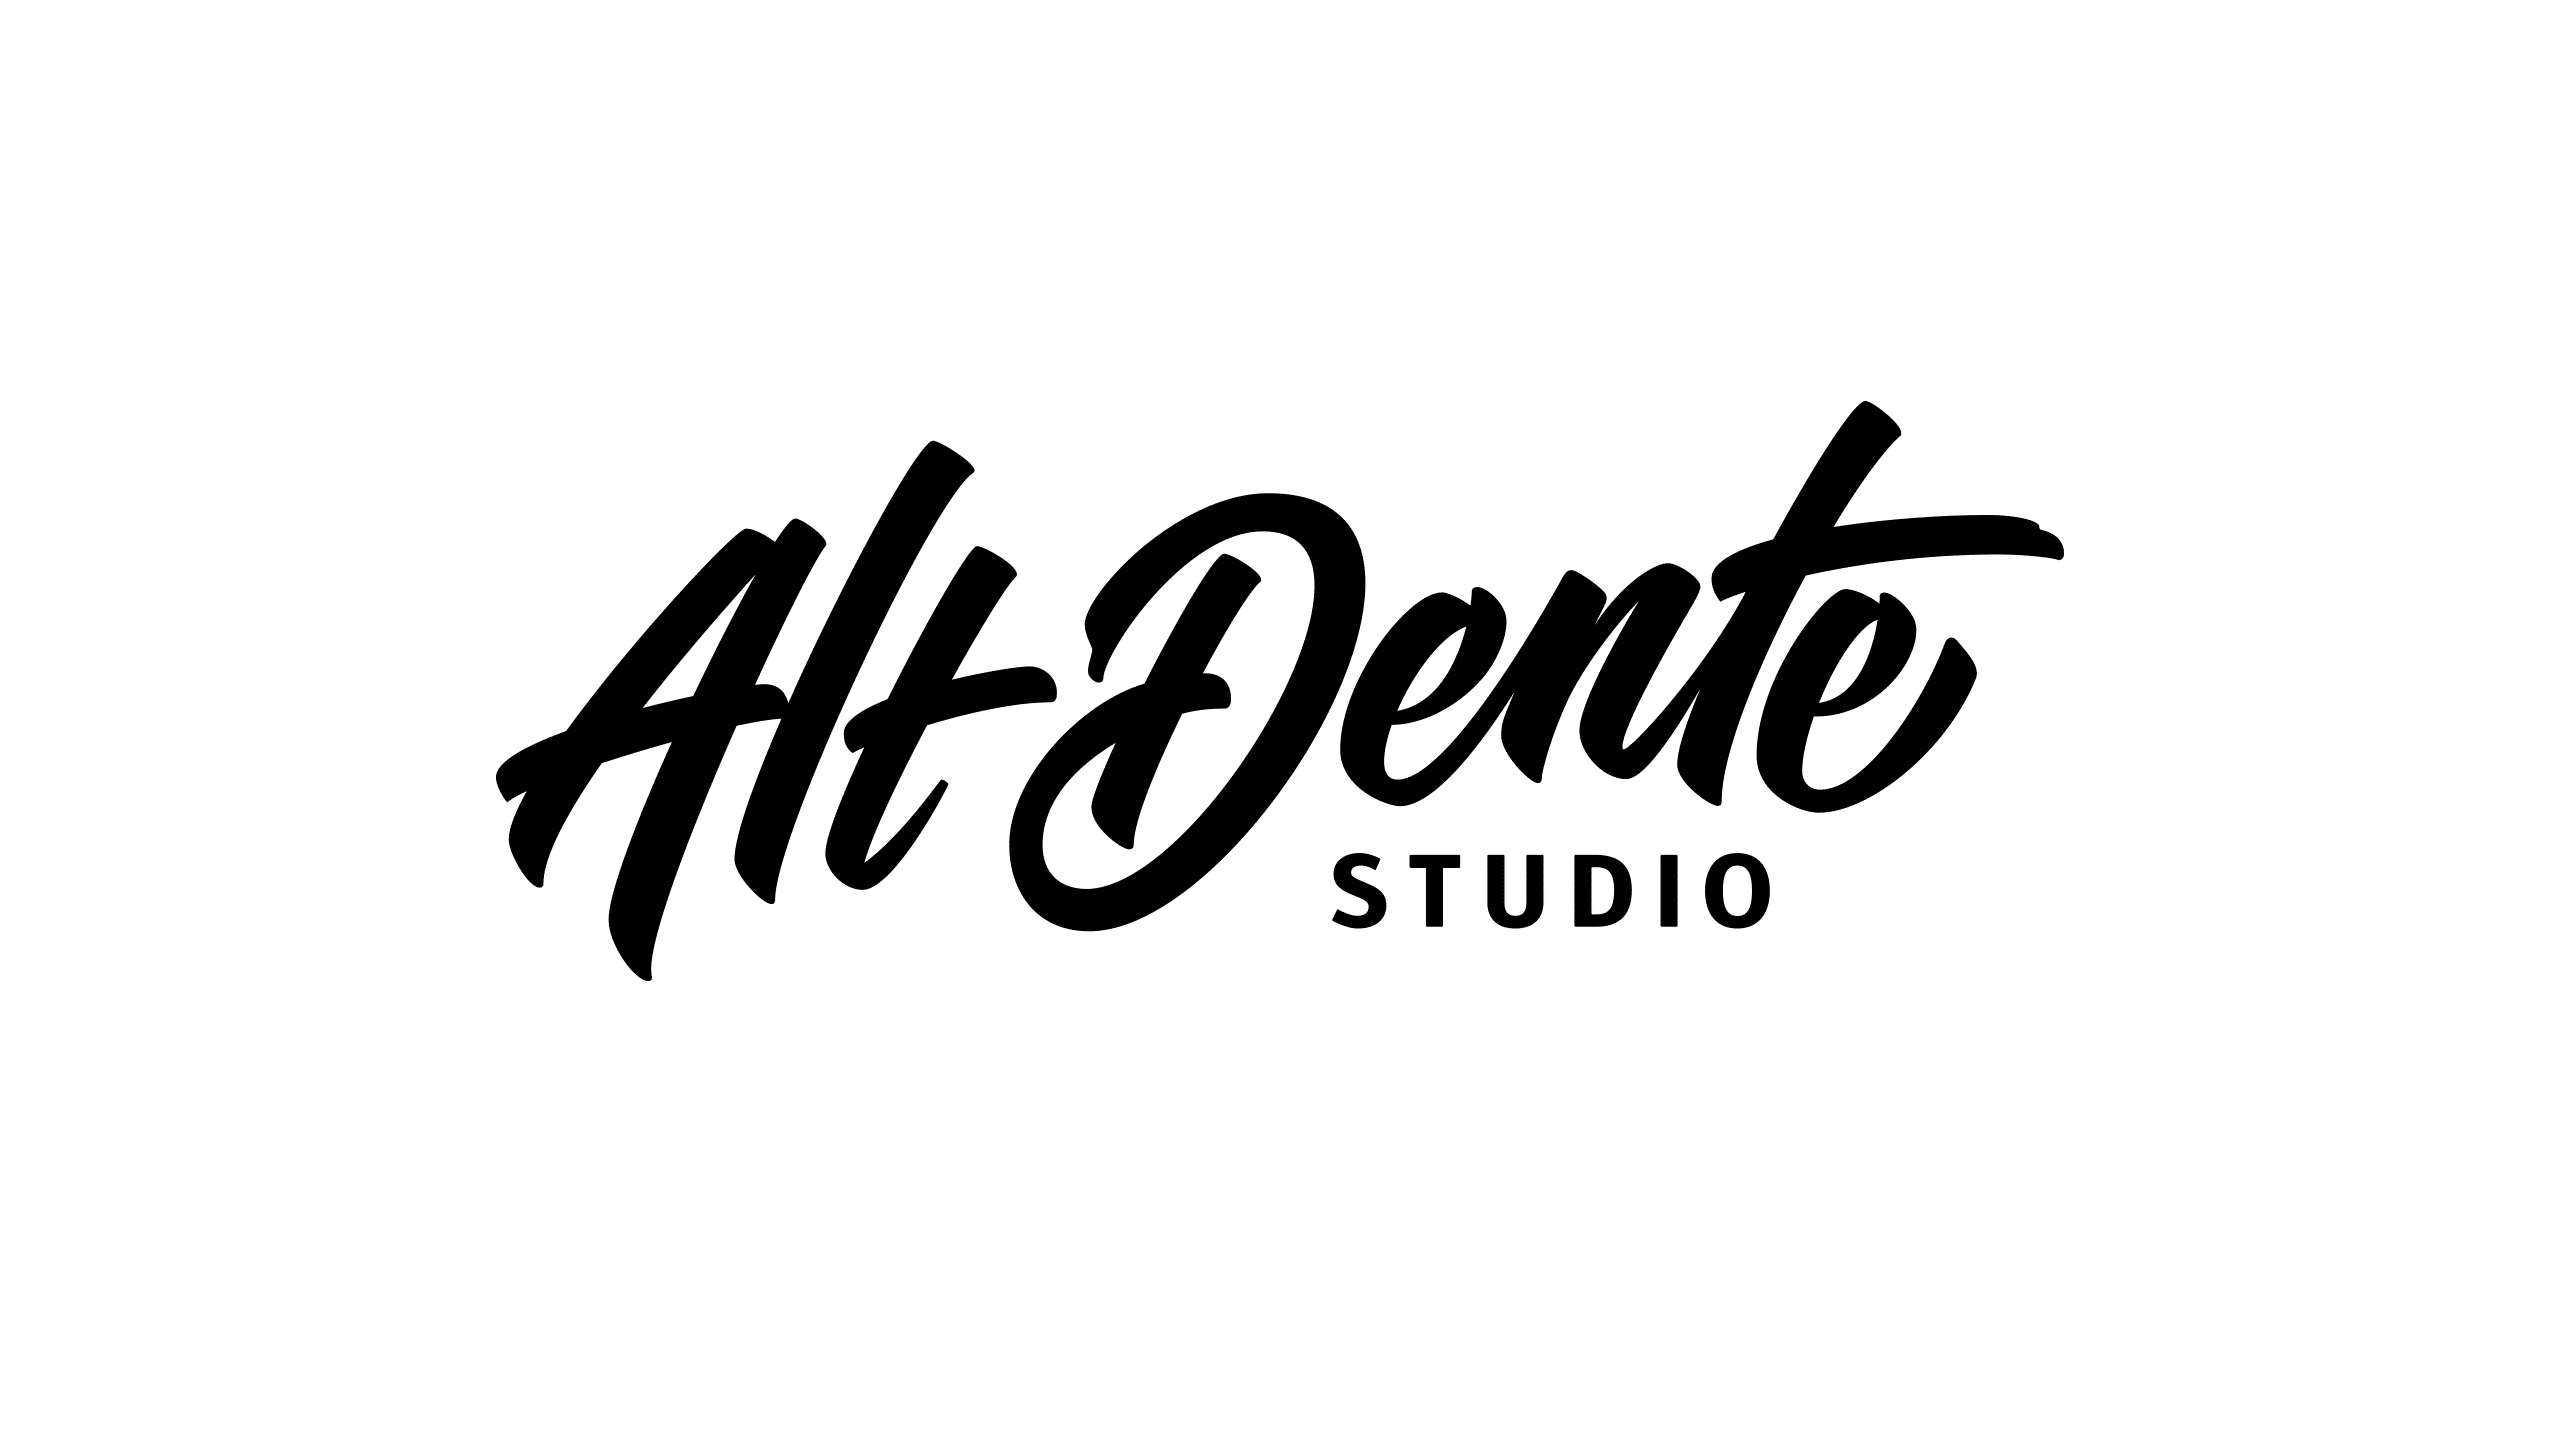 Final logo design for Alt Dente Studio